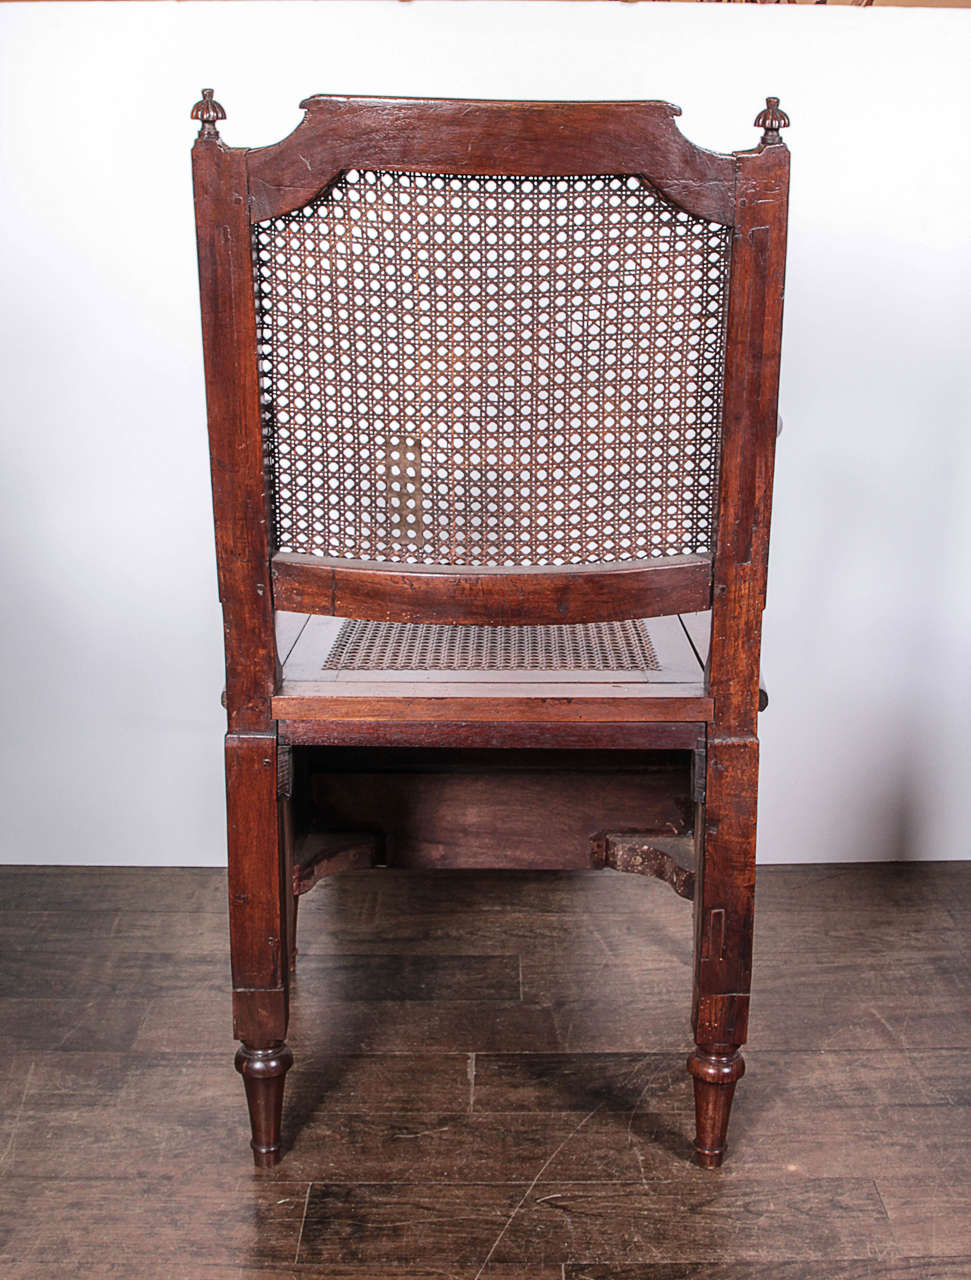 Louis xvi chaise perc e for sale at 1stdibs for Chaise louis xvi